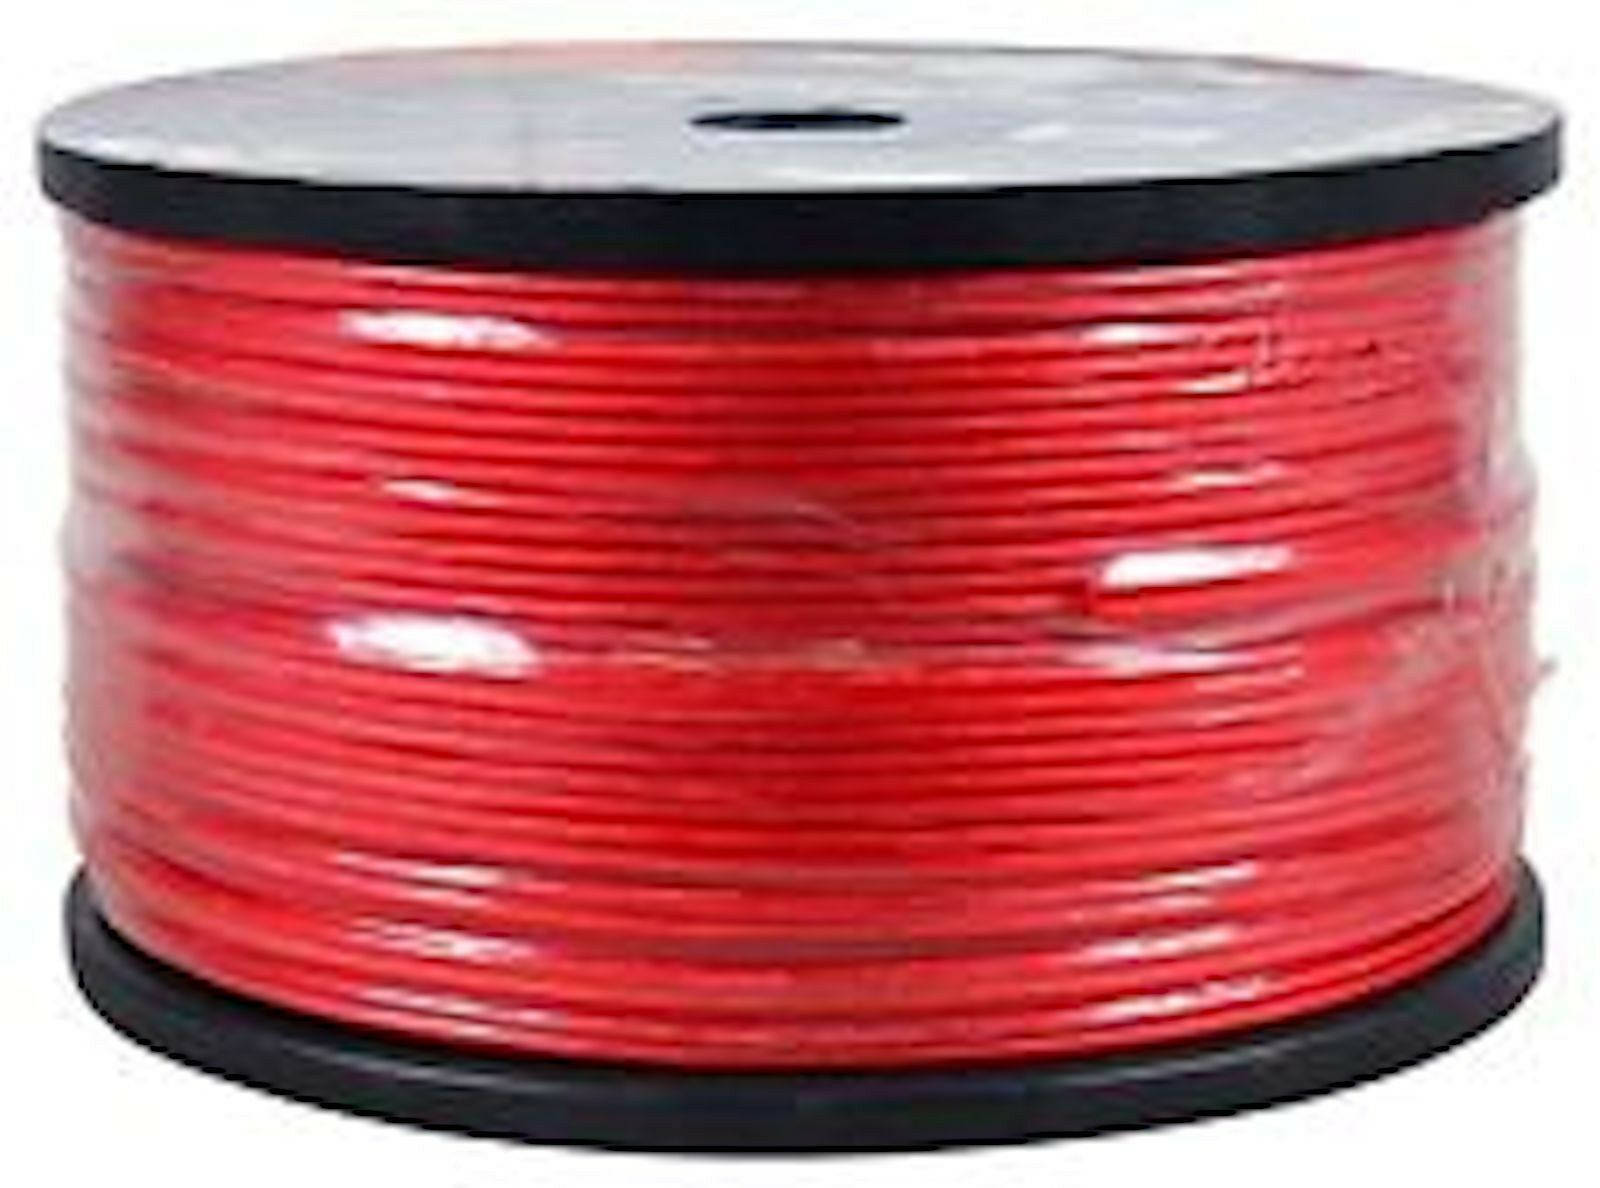 IMC Audio 500 FT 18 Gauge Speaker Cable Wire Roll for Home or Car ...